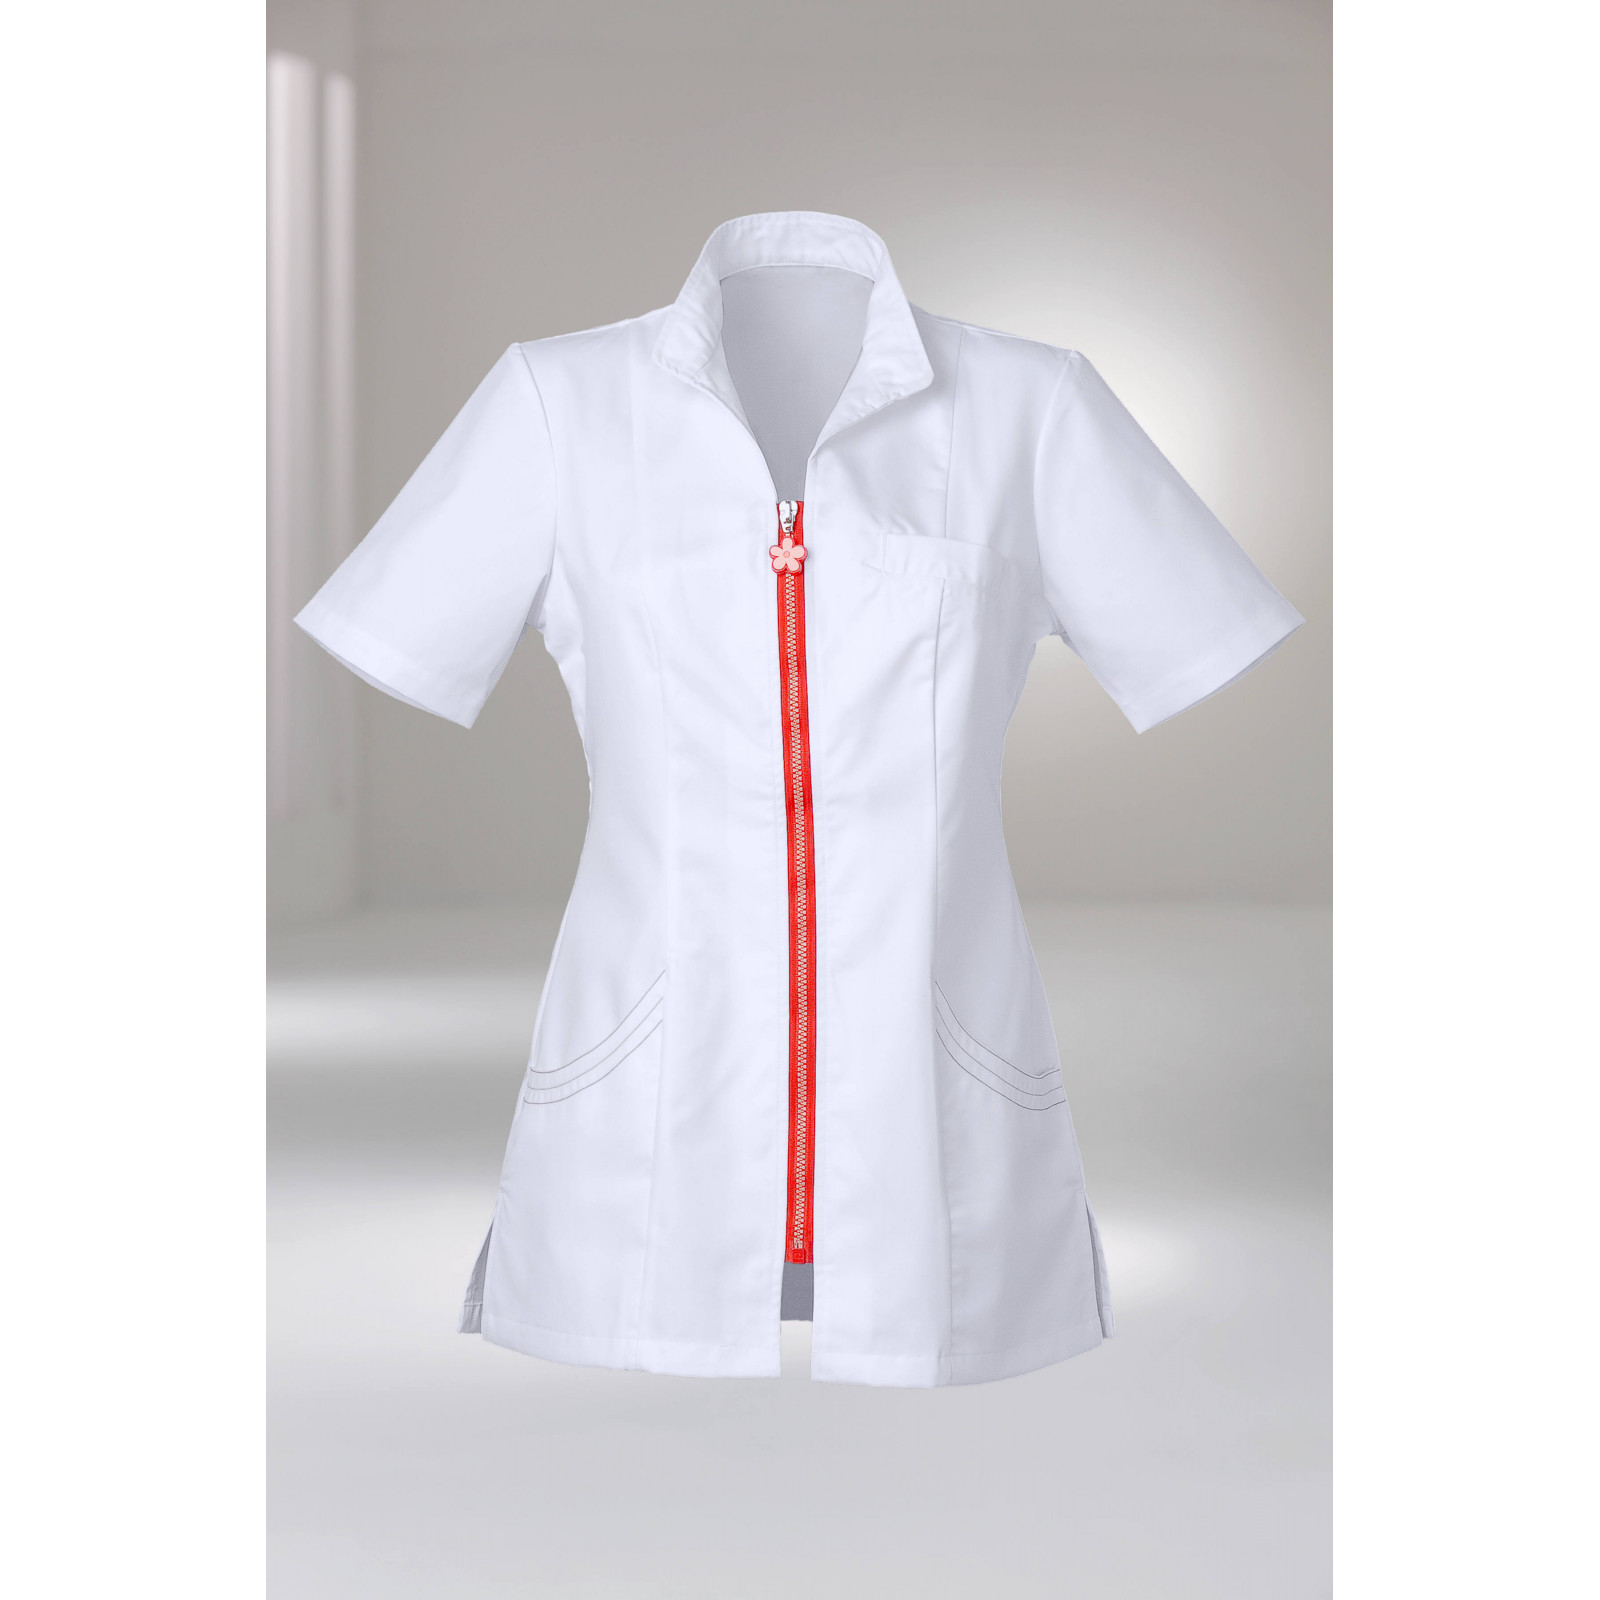 "Blouse médicale femme ""Chrystel"", Clinic dress"